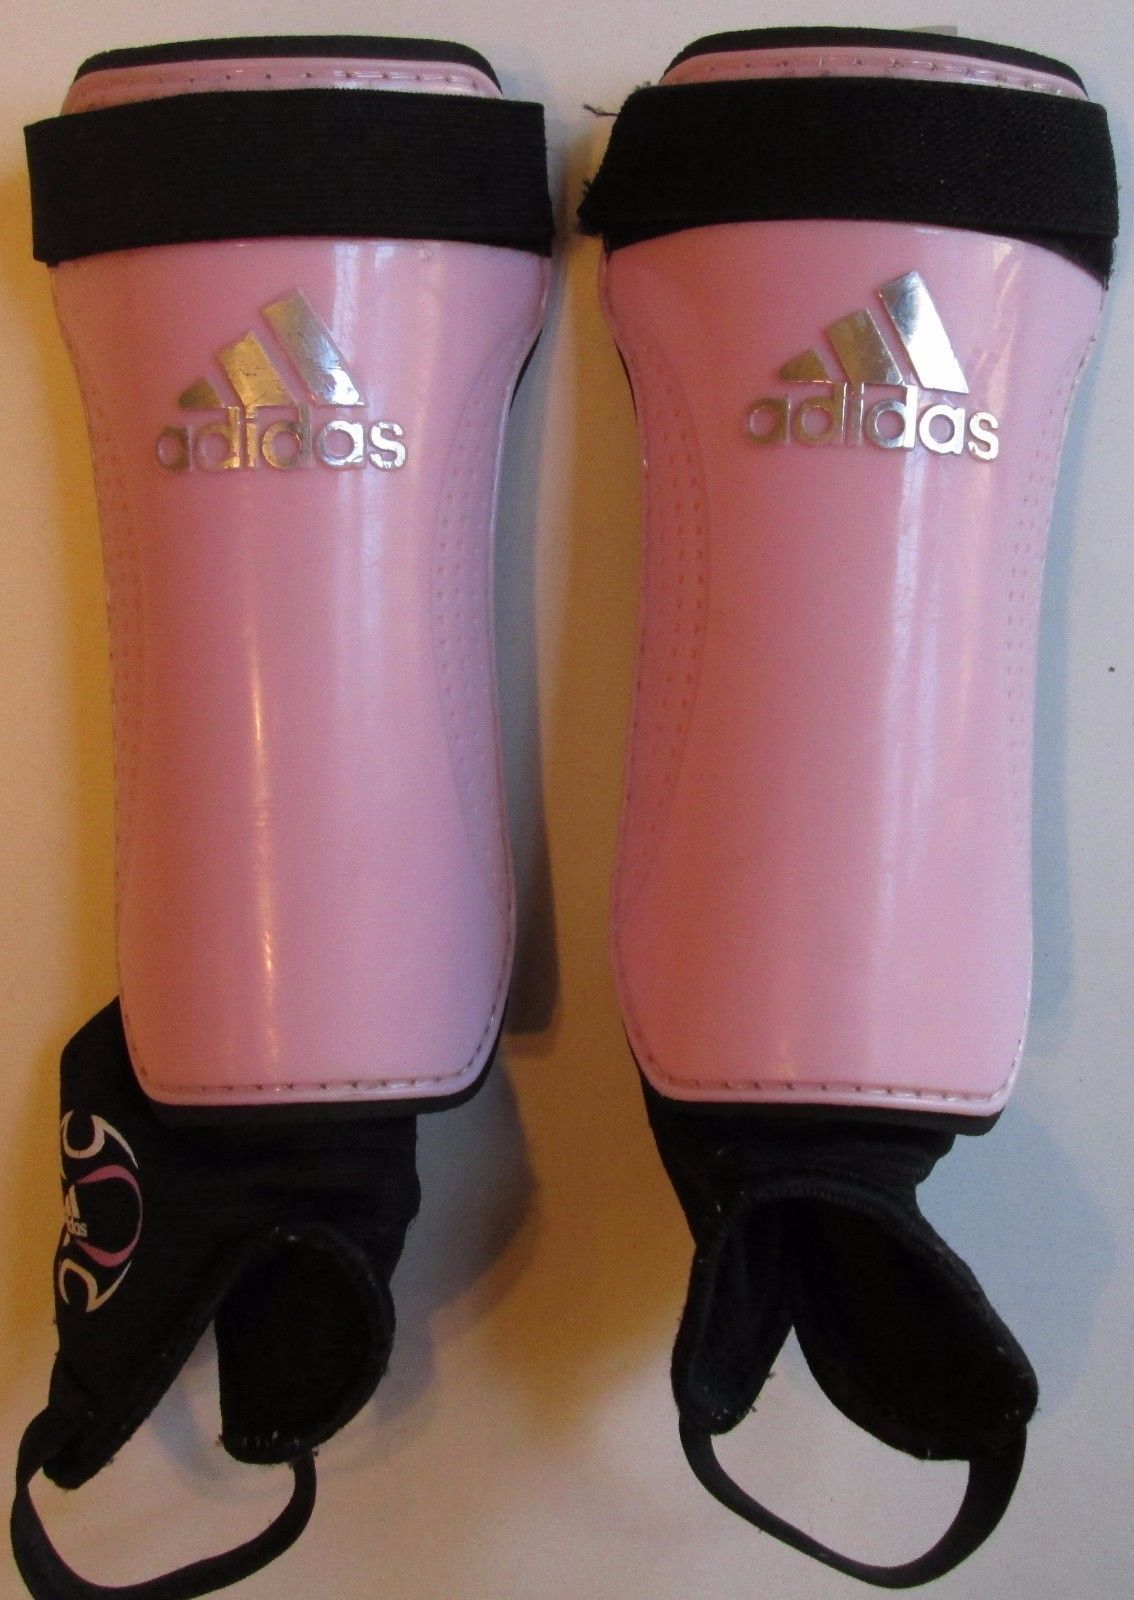 dce9d49c96d2 Adidas Performance Youth Soccer Shin Guards Girls Pink & White Size M -  $12.99